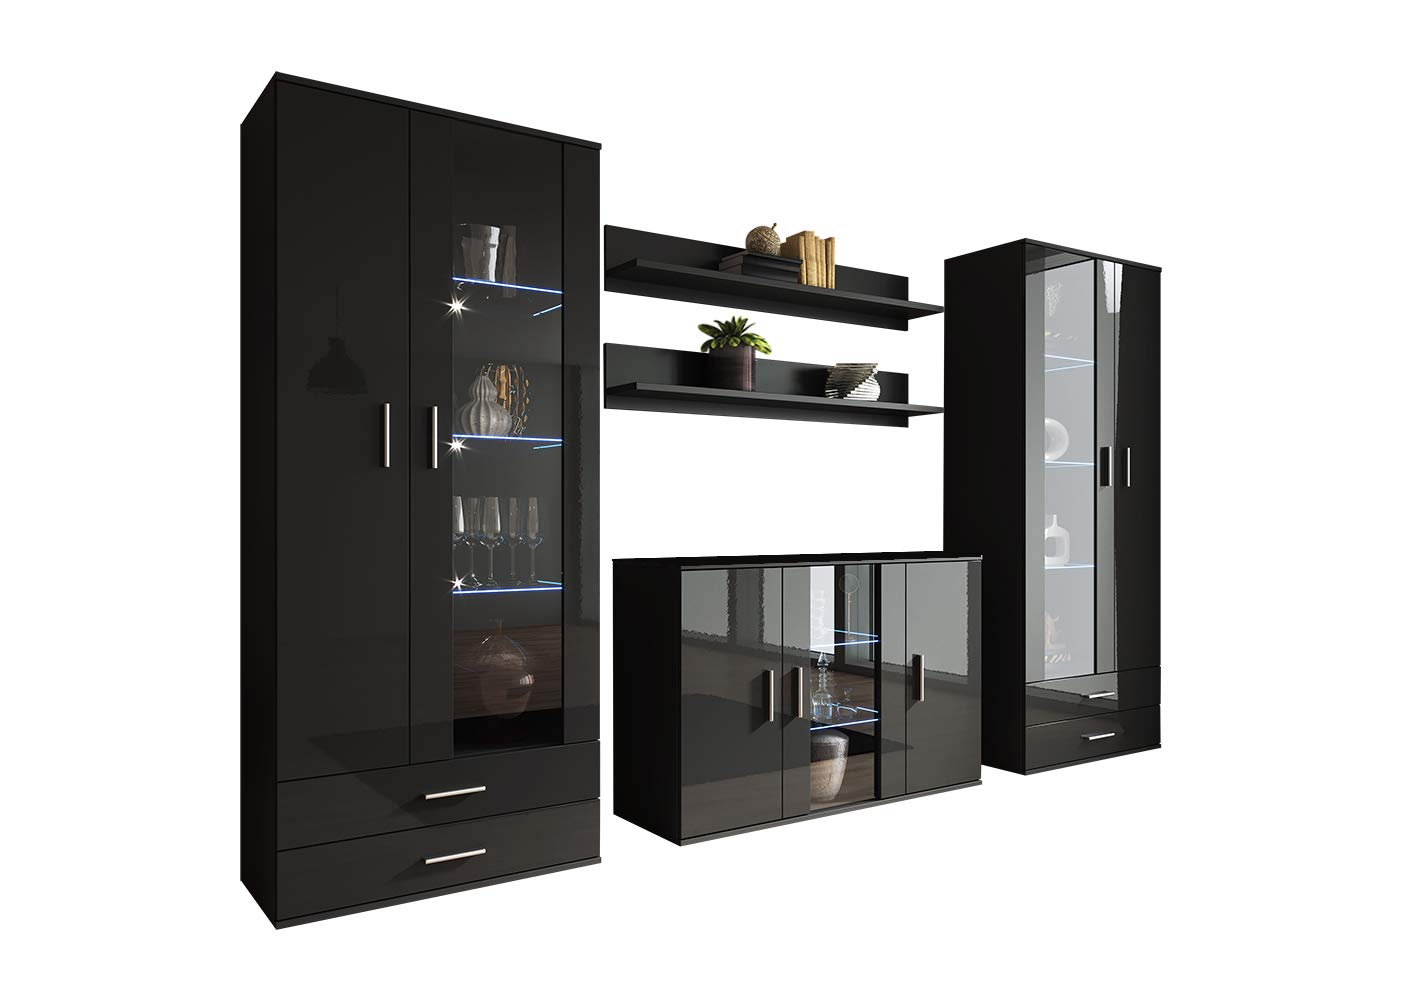 Soho 10 Modern Wall Unit with 16 Colors LED Lights (Black) by Meble Furniture & Rugs